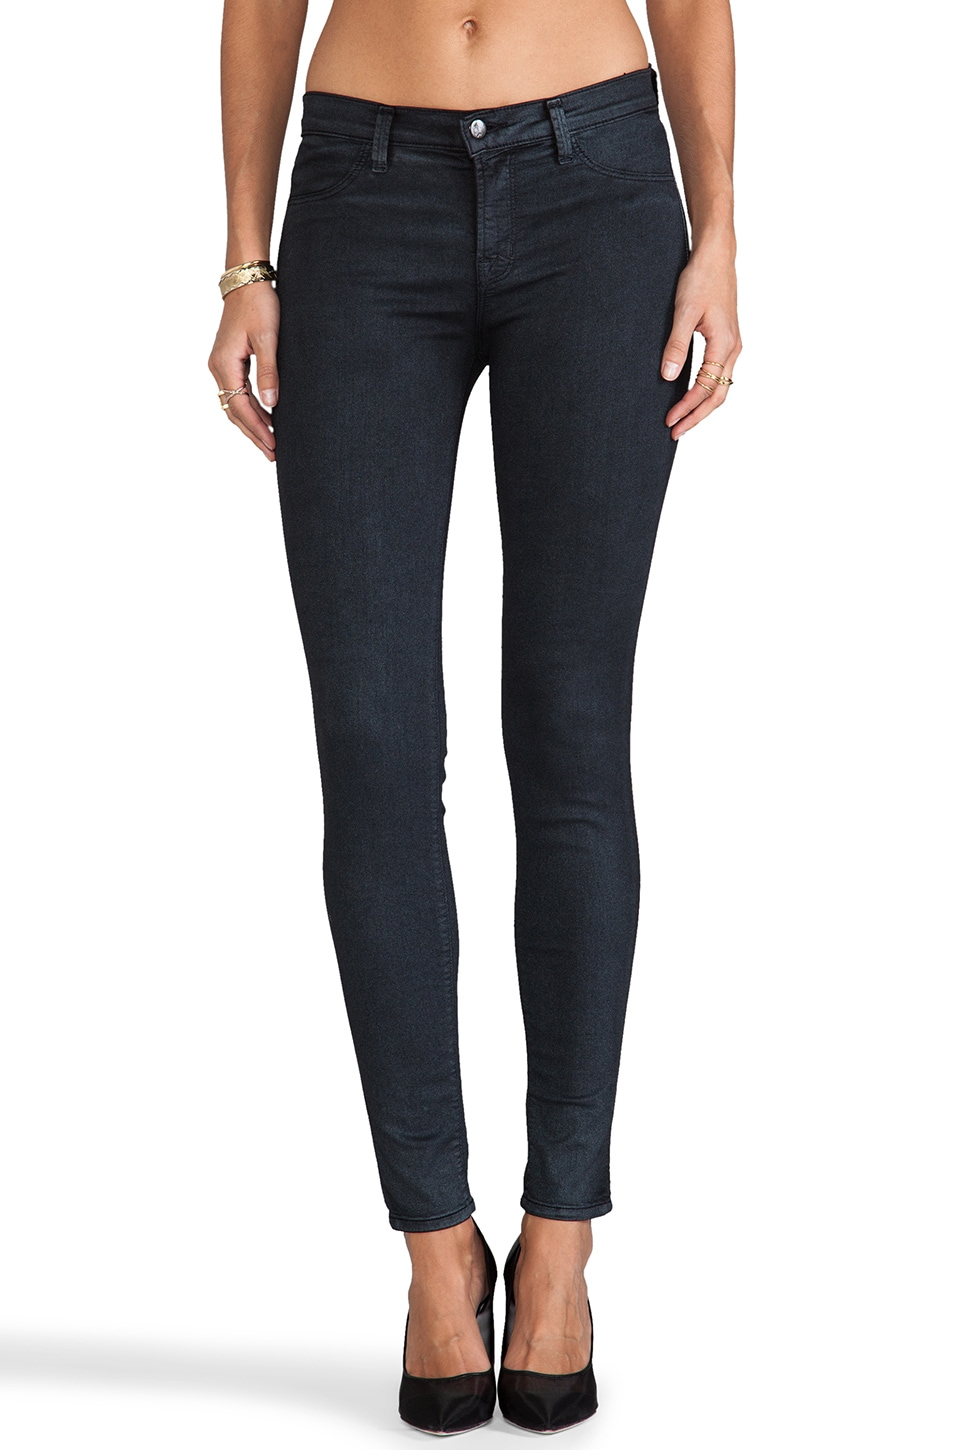 J Brand Midrise Coated Legging in Blue Nebula